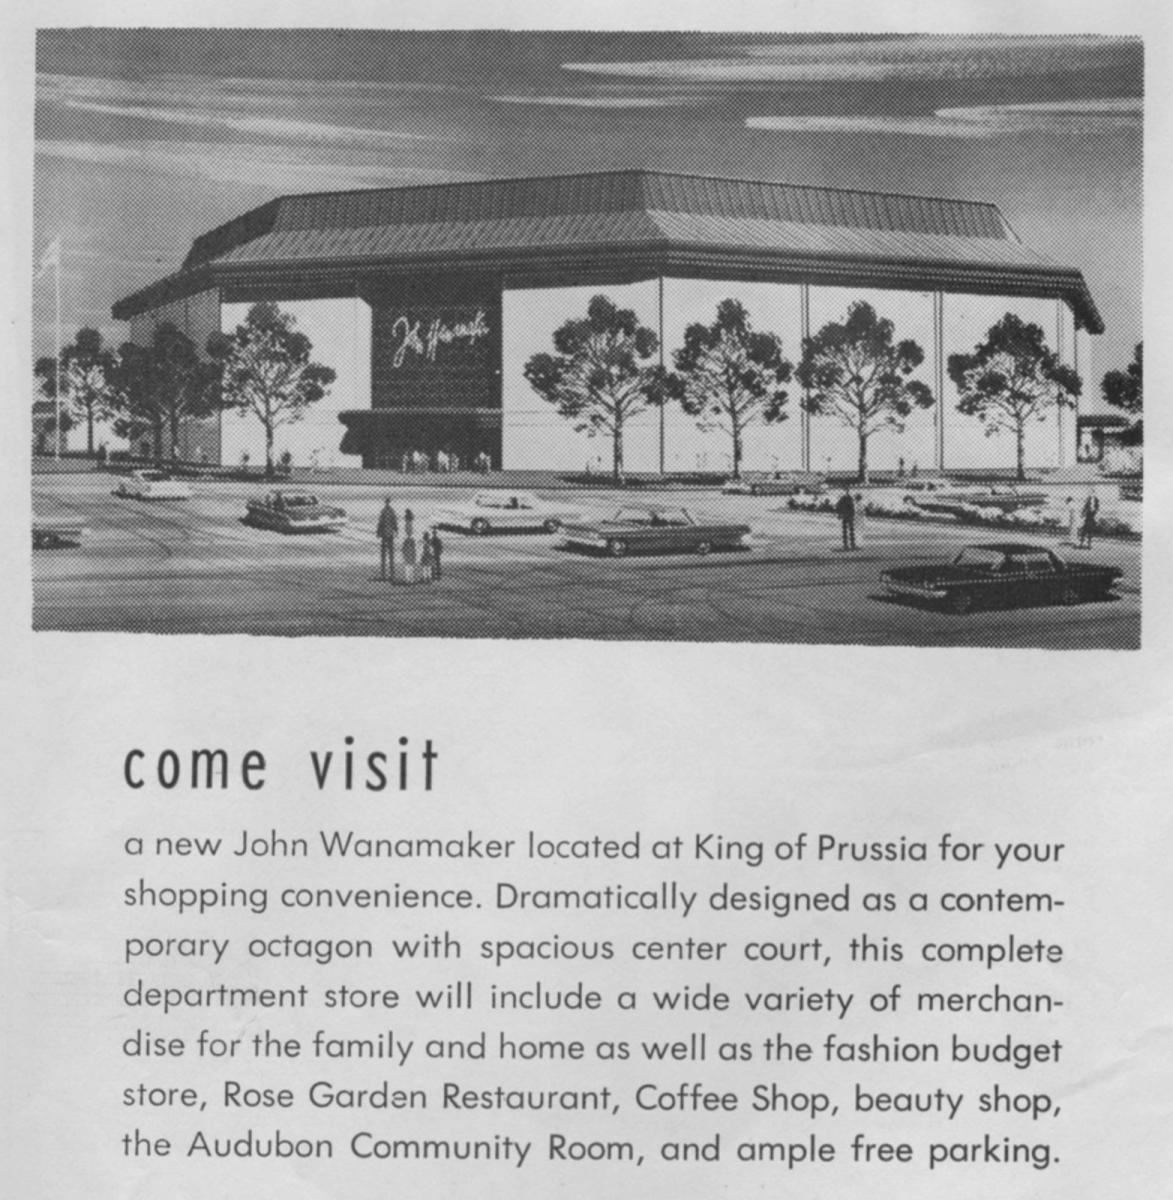 A History of King of Prussia Mall on westmoreland mall directory map, country club plaza directory map, lynnhaven mall directory map, meridian mall directory map, the woodlands mall directory map, arden fair mall directory map, northlake mall directory map, huntington mall directory map, tucson mall directory map, willowbrook mall directory map, sawgrass mall directory map, steeplegate mall directory map, everett mall directory map, oakland mall directory map, westshore plaza directory map, natick mall directory map, puente hills mall directory map, fashion show mall directory map, lakeside mall directory map, cumberland mall directory map,